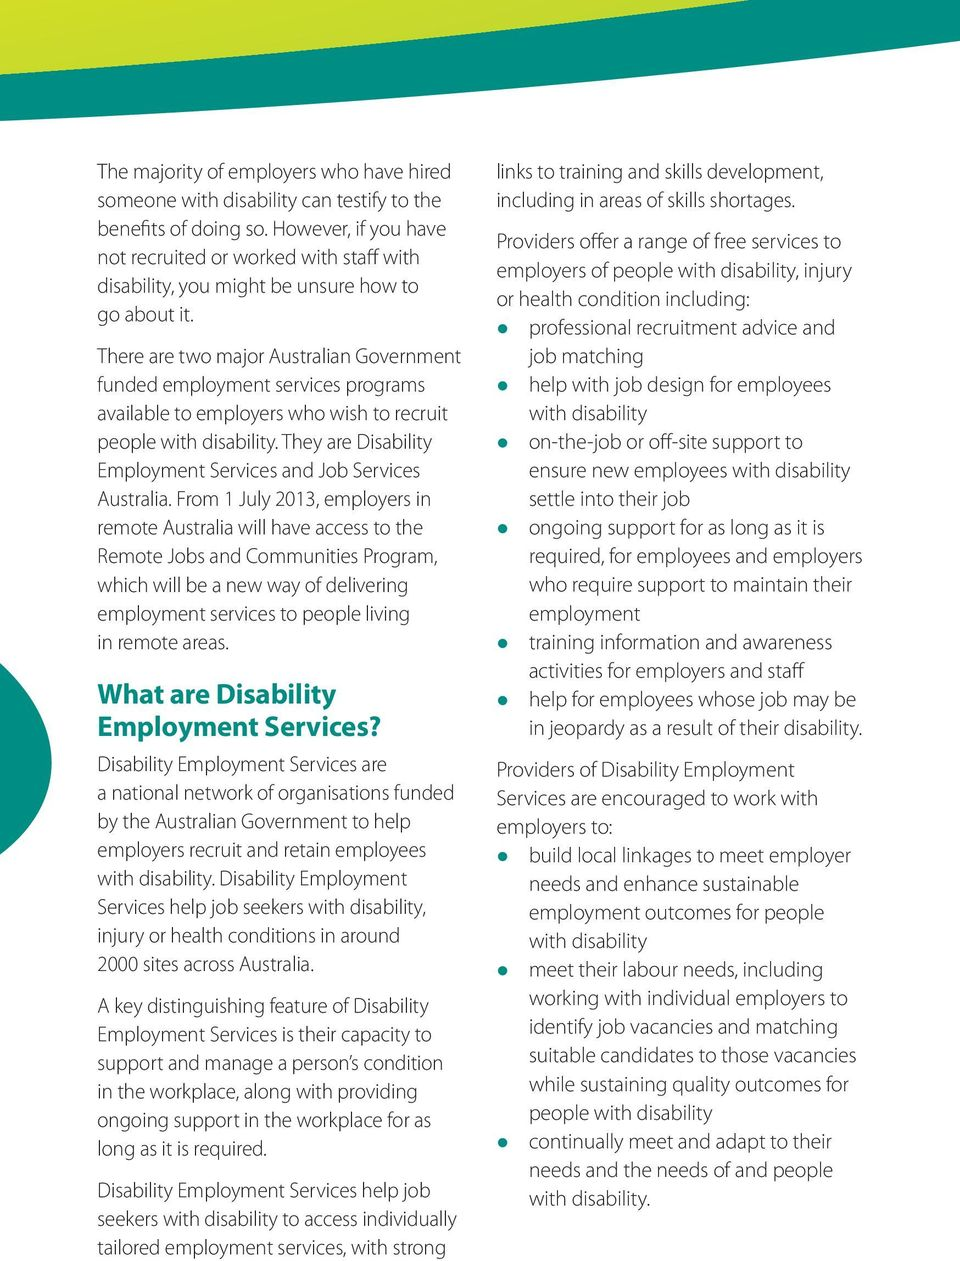 There are two major Australian Government funded employment services programs available to employers who wish to recruit people. They are Disability Employment Services and Job Services Australia.